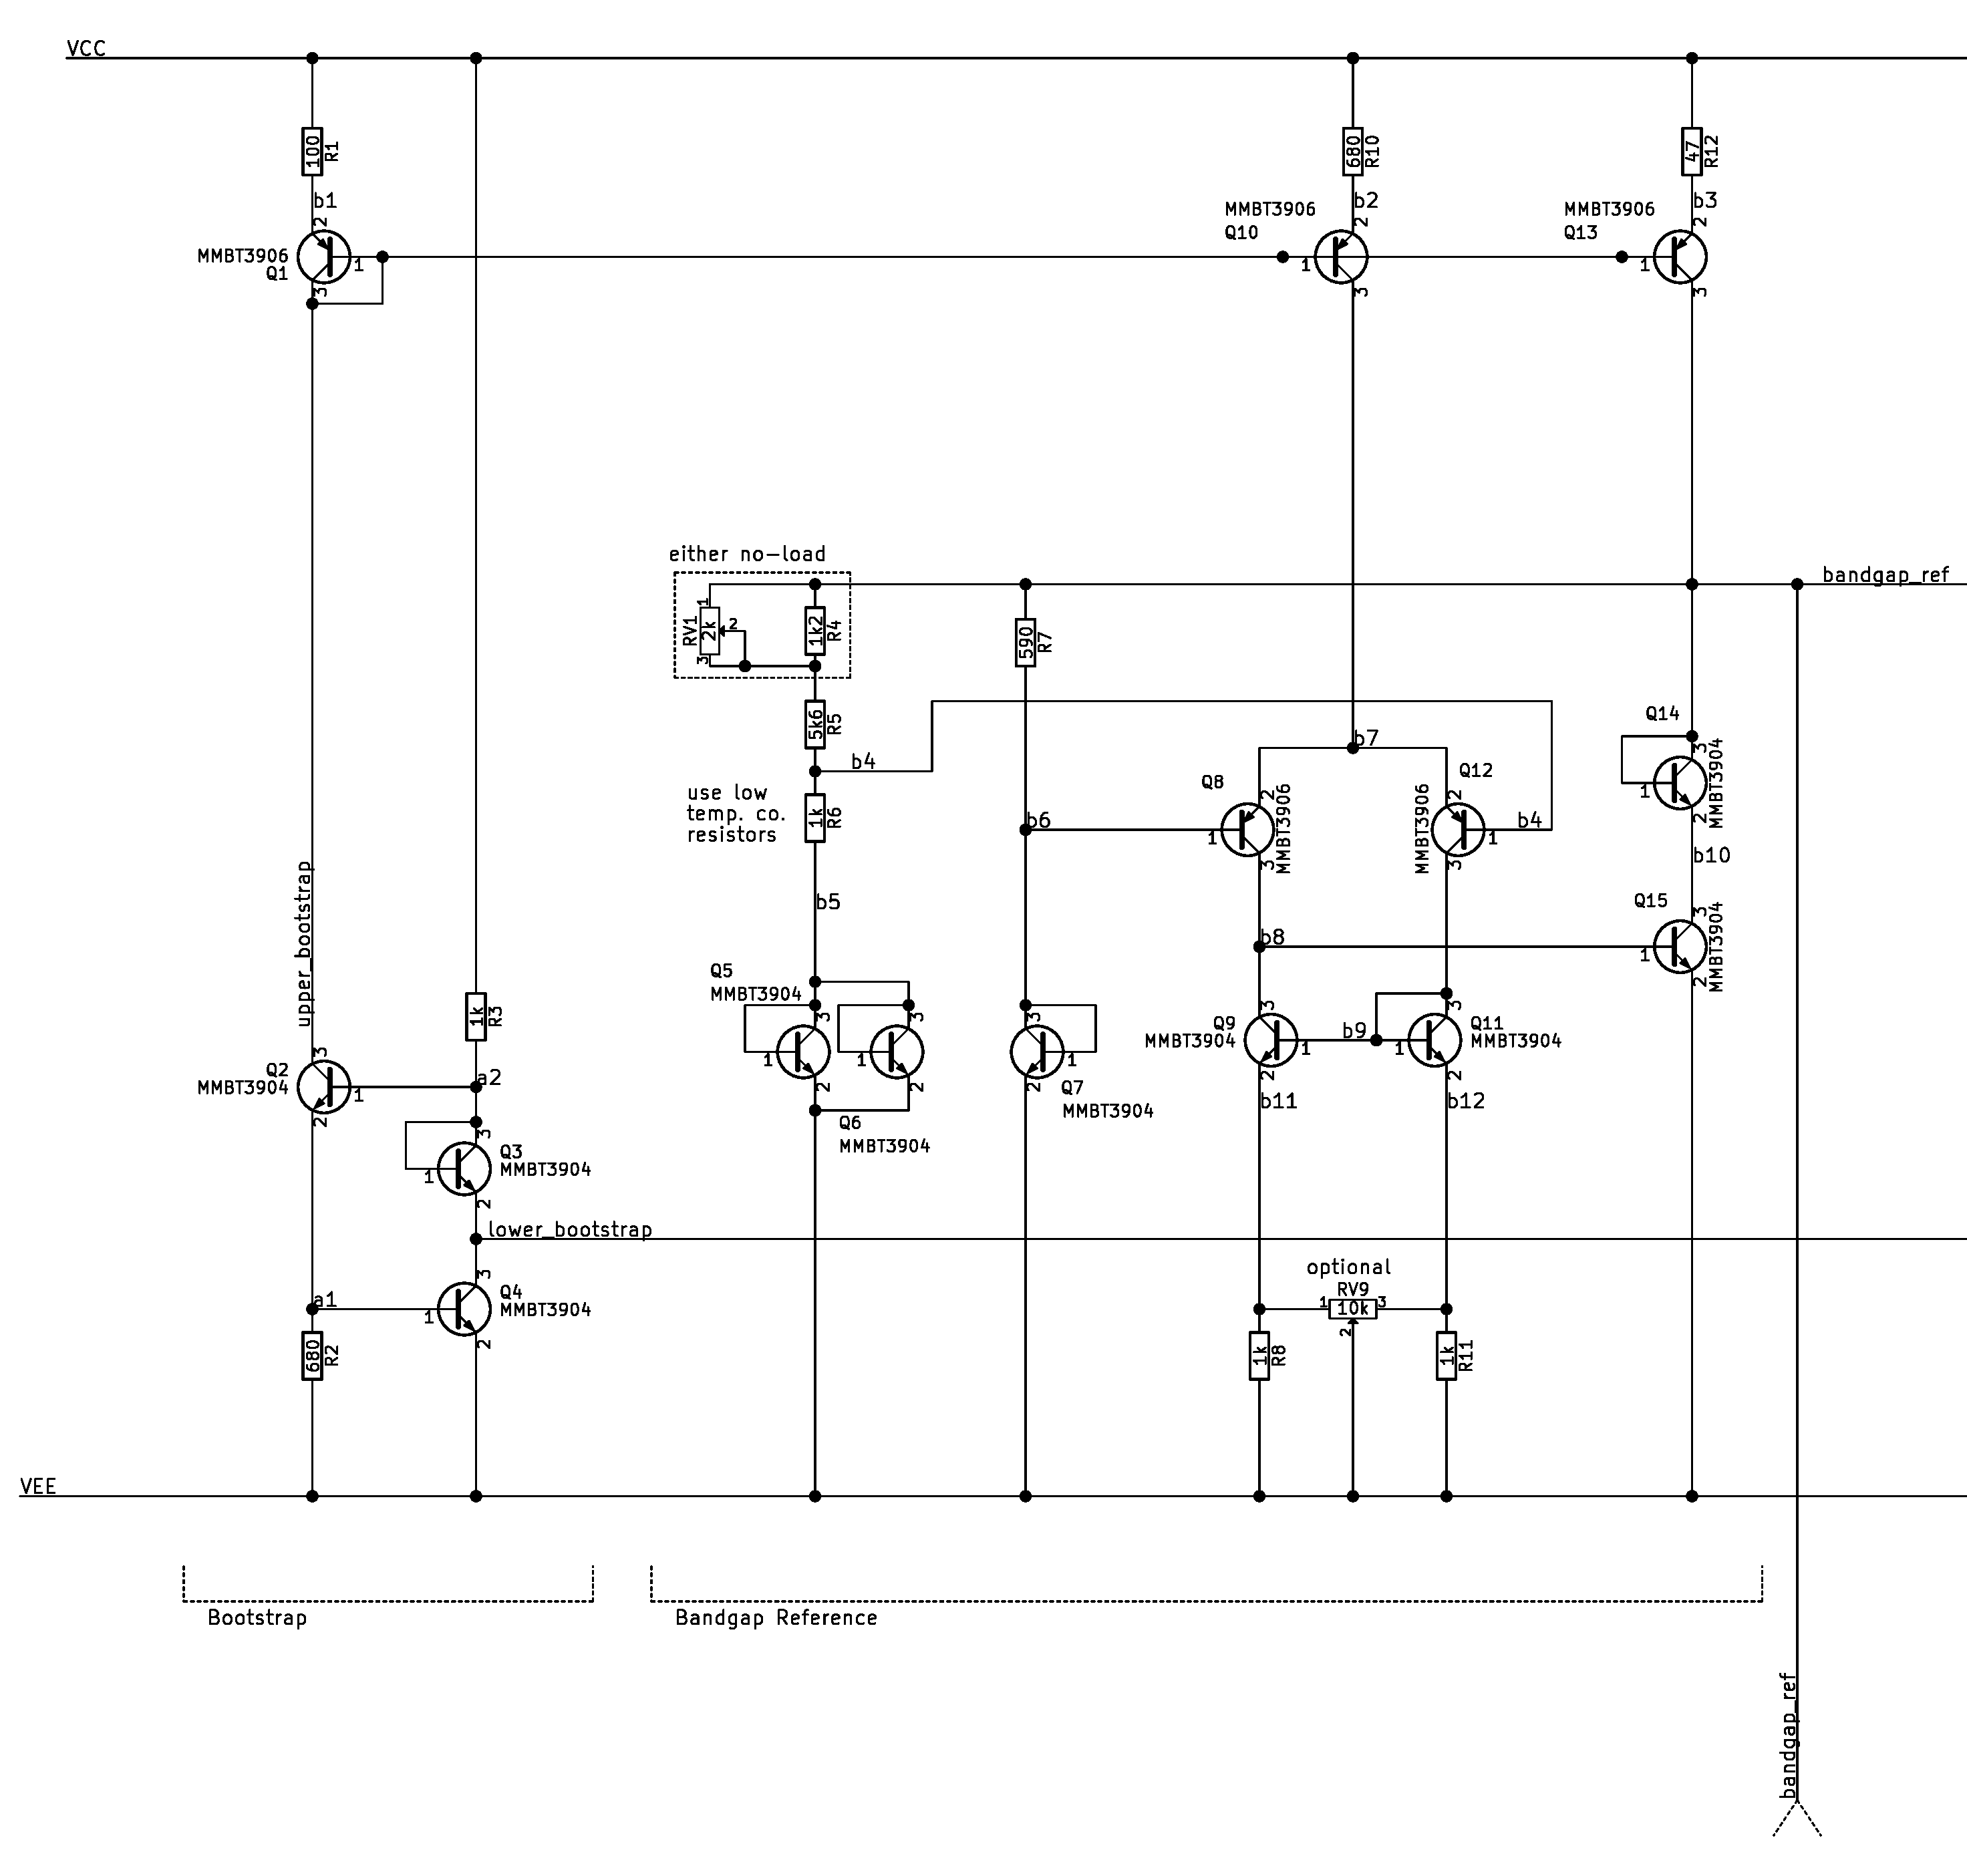 High Frequency Transistorized Function Generator Block Diagram Of Fgc 200 Bootstrap With Bandgap